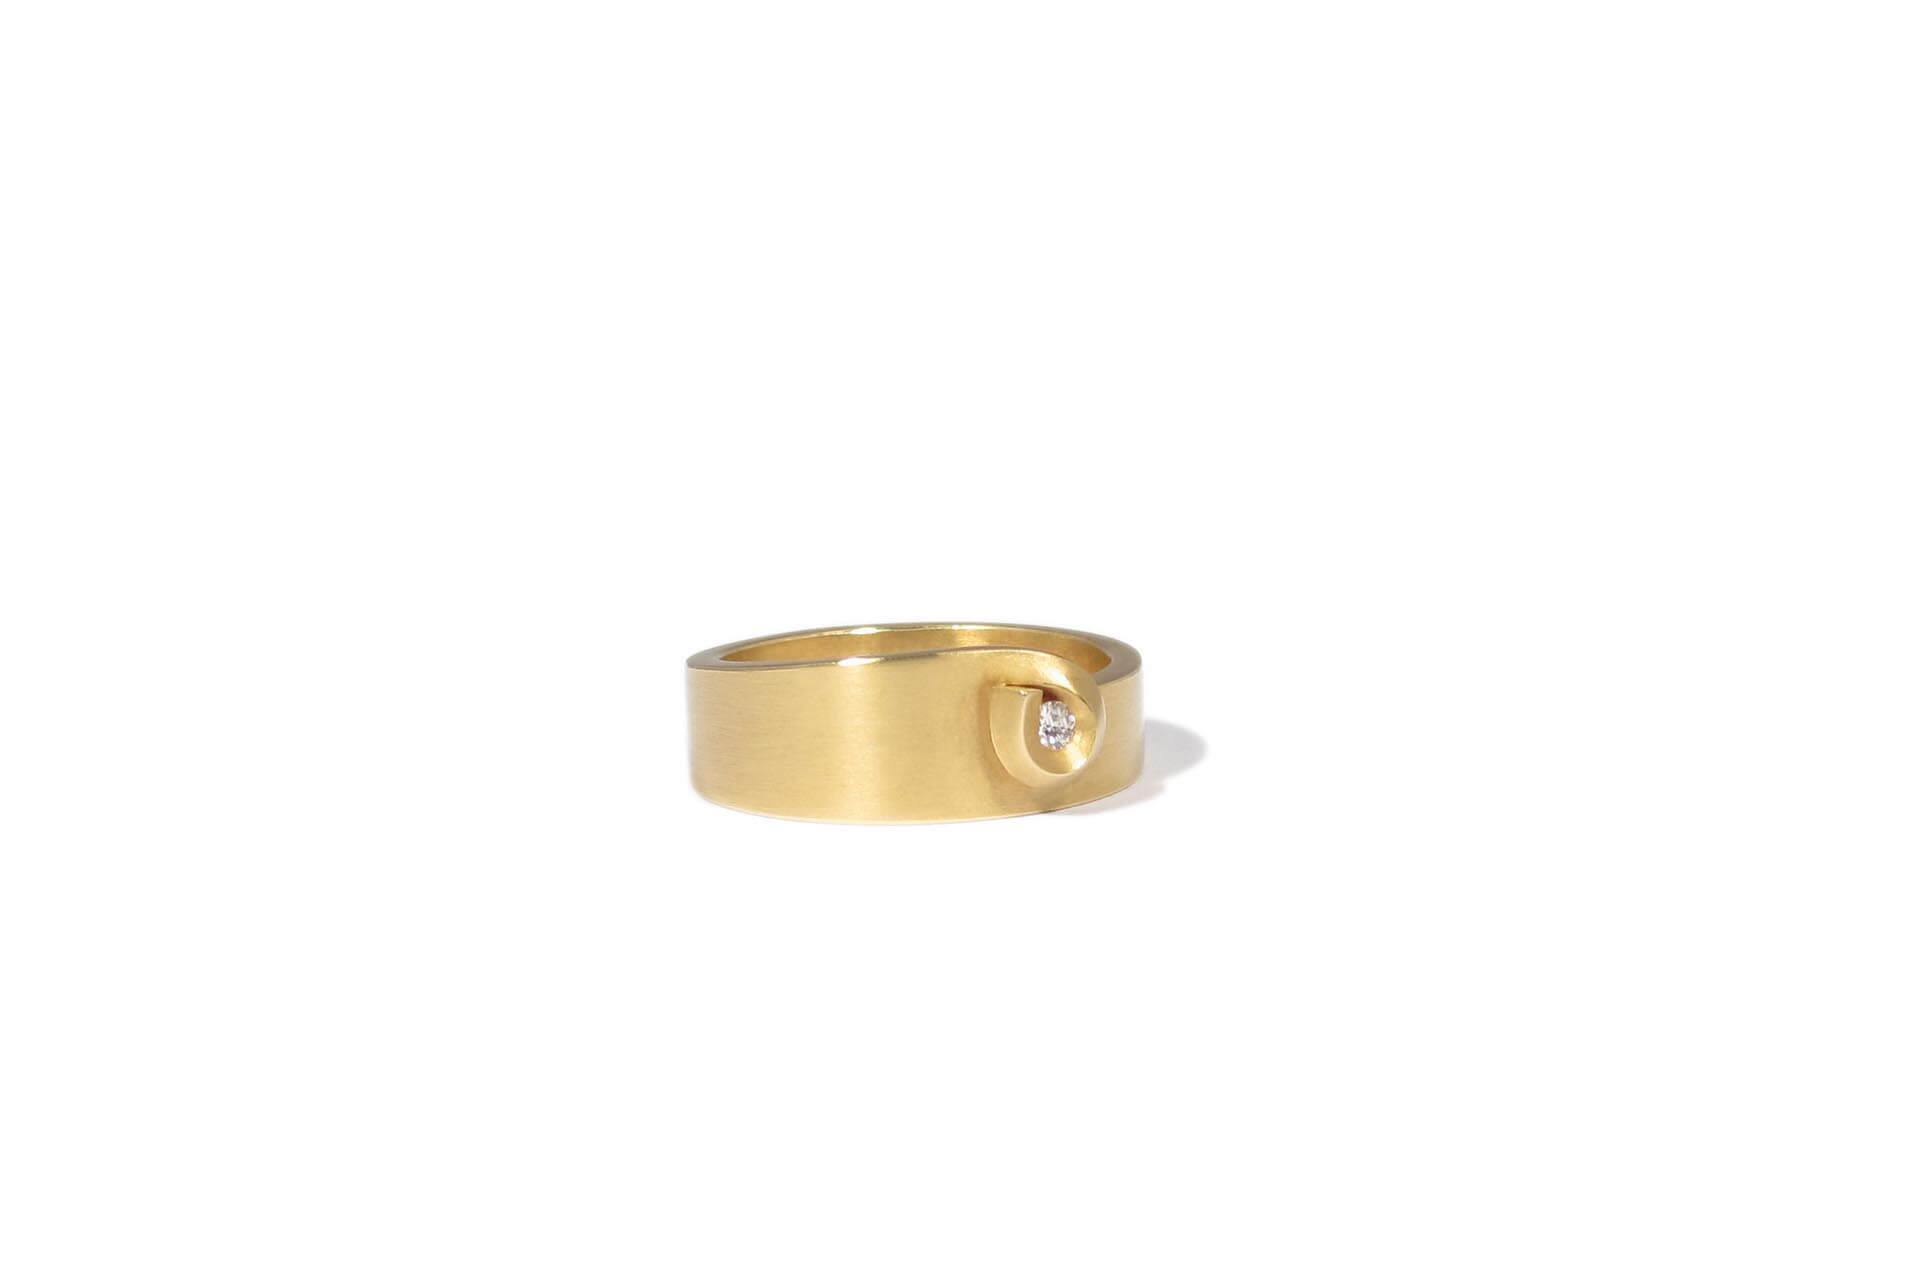 Niessing gold ring with a white diamond